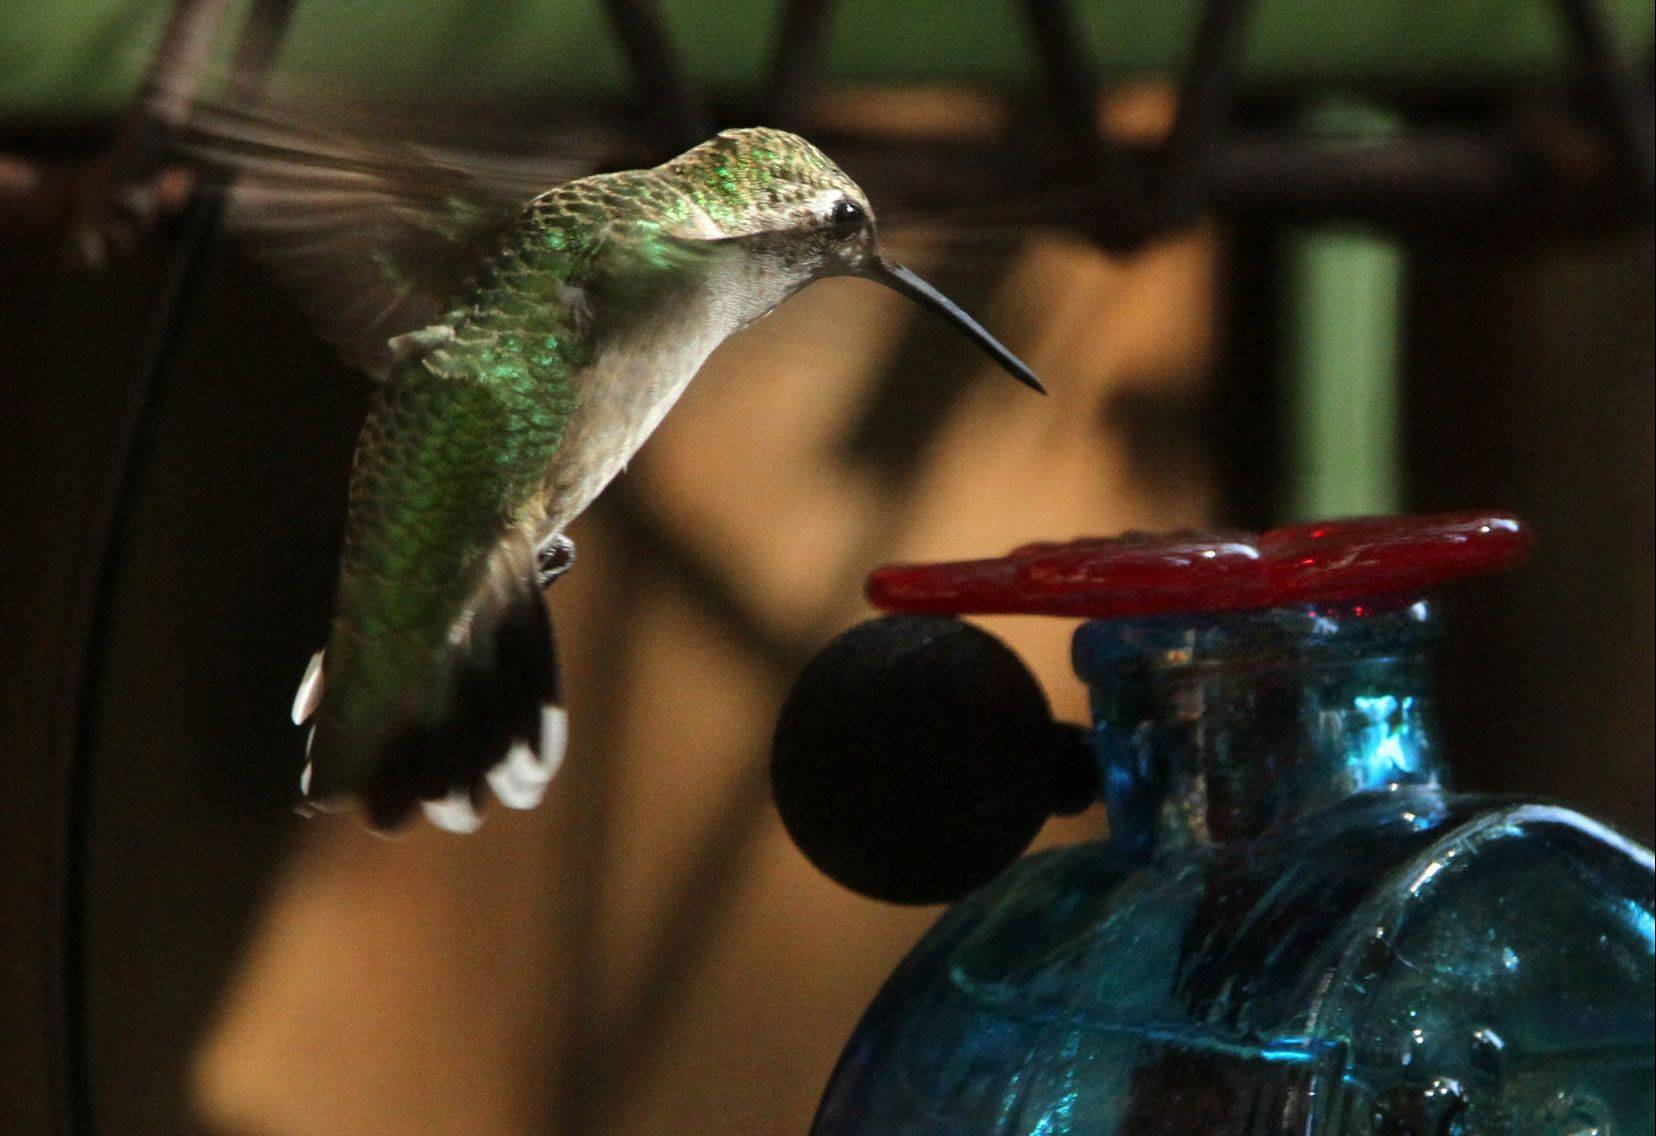 Drought forcing hummingbirds into suburban backyard gardens